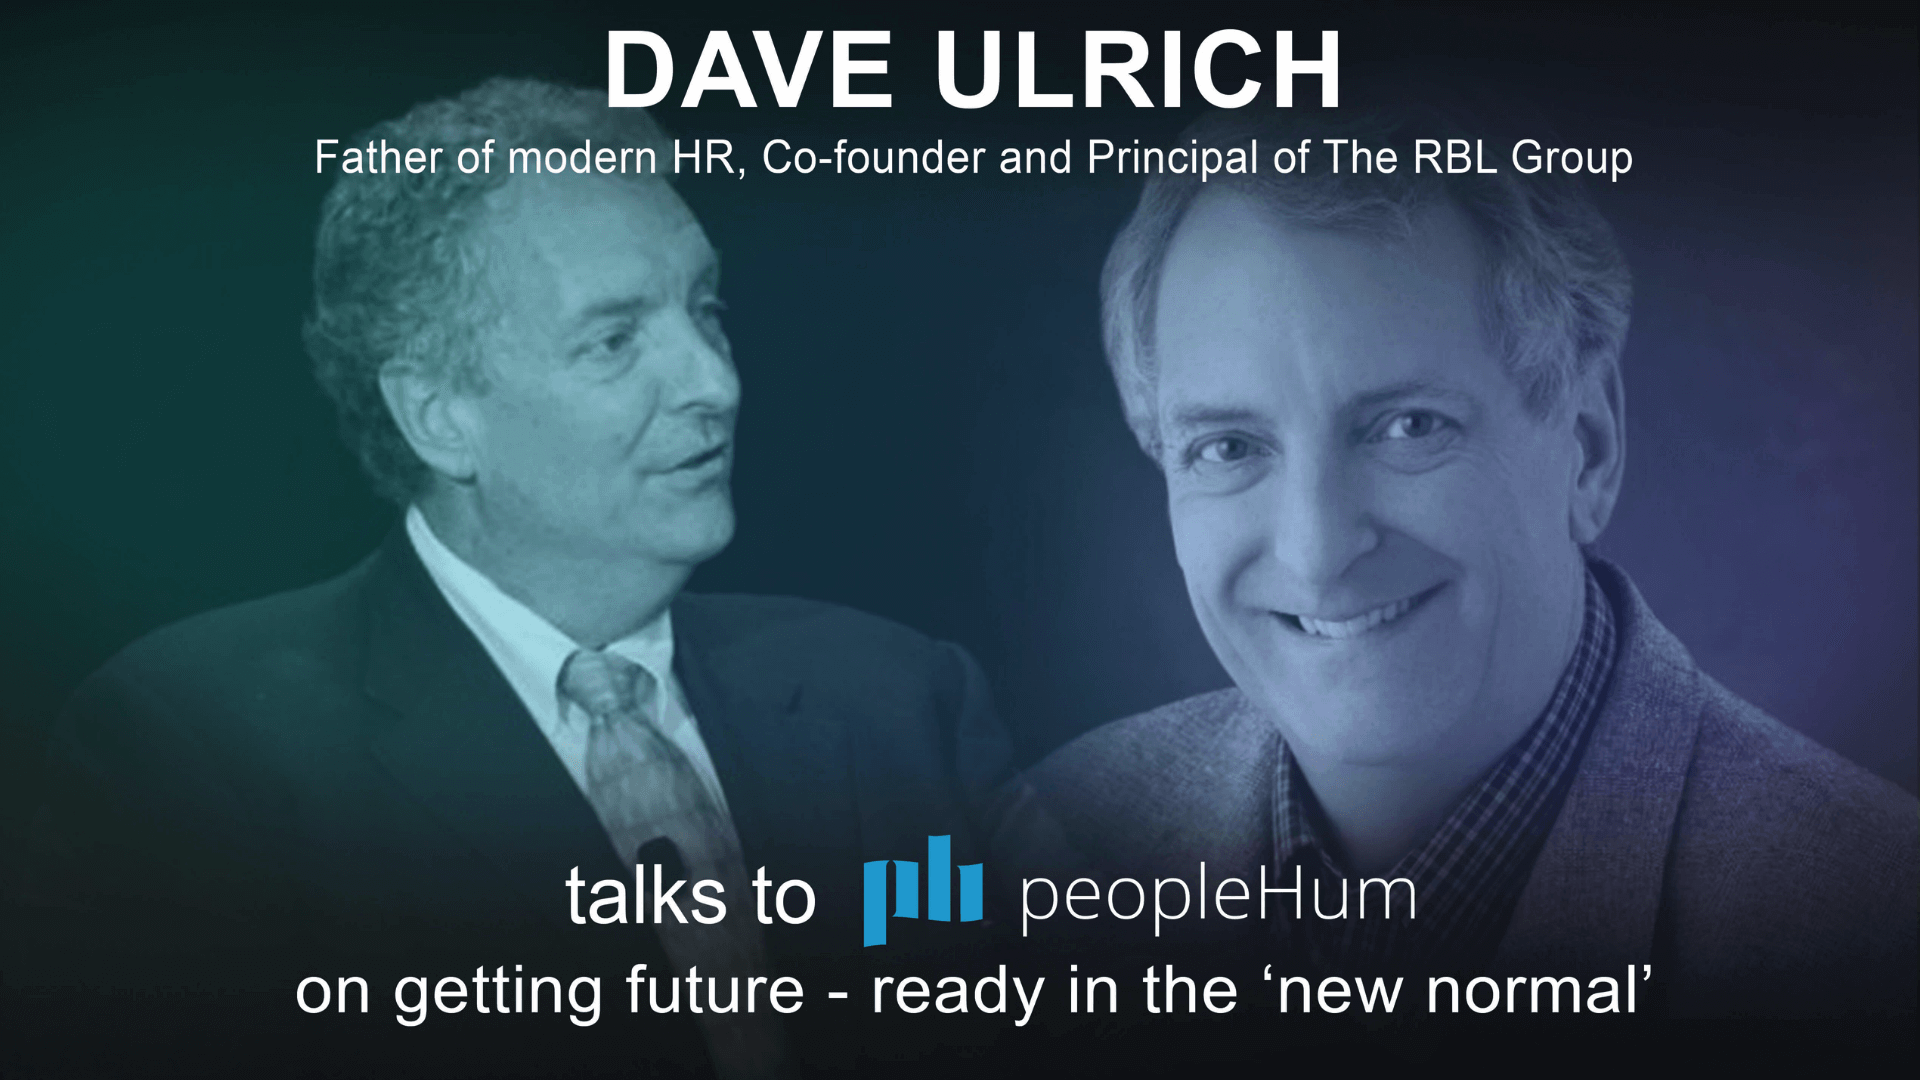 Getting future-ready in the 'new normal' - Dave Ulrich [Interview]